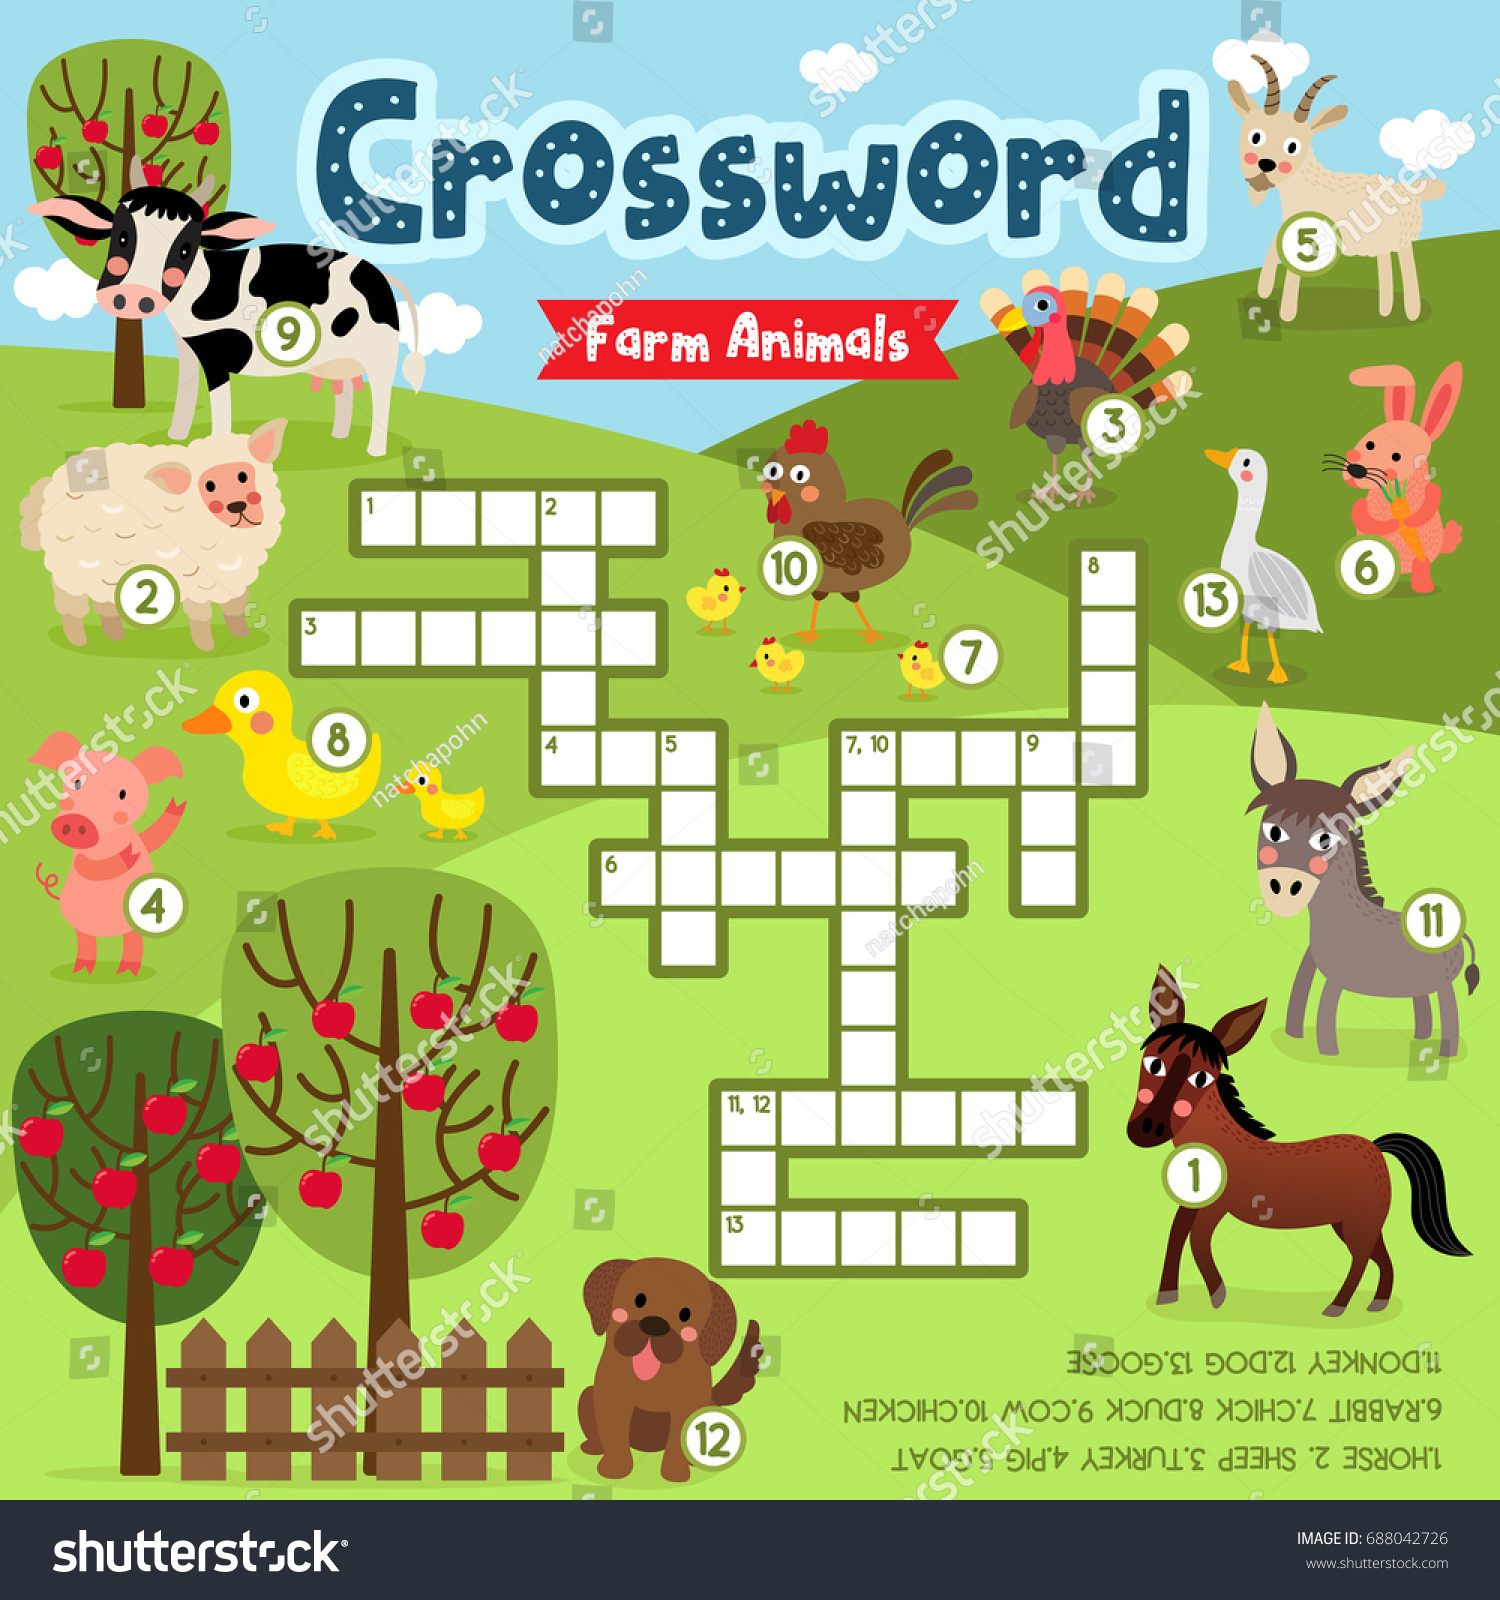 Crosswords Puzzle Game Farm Animals Preschool Stock Vector